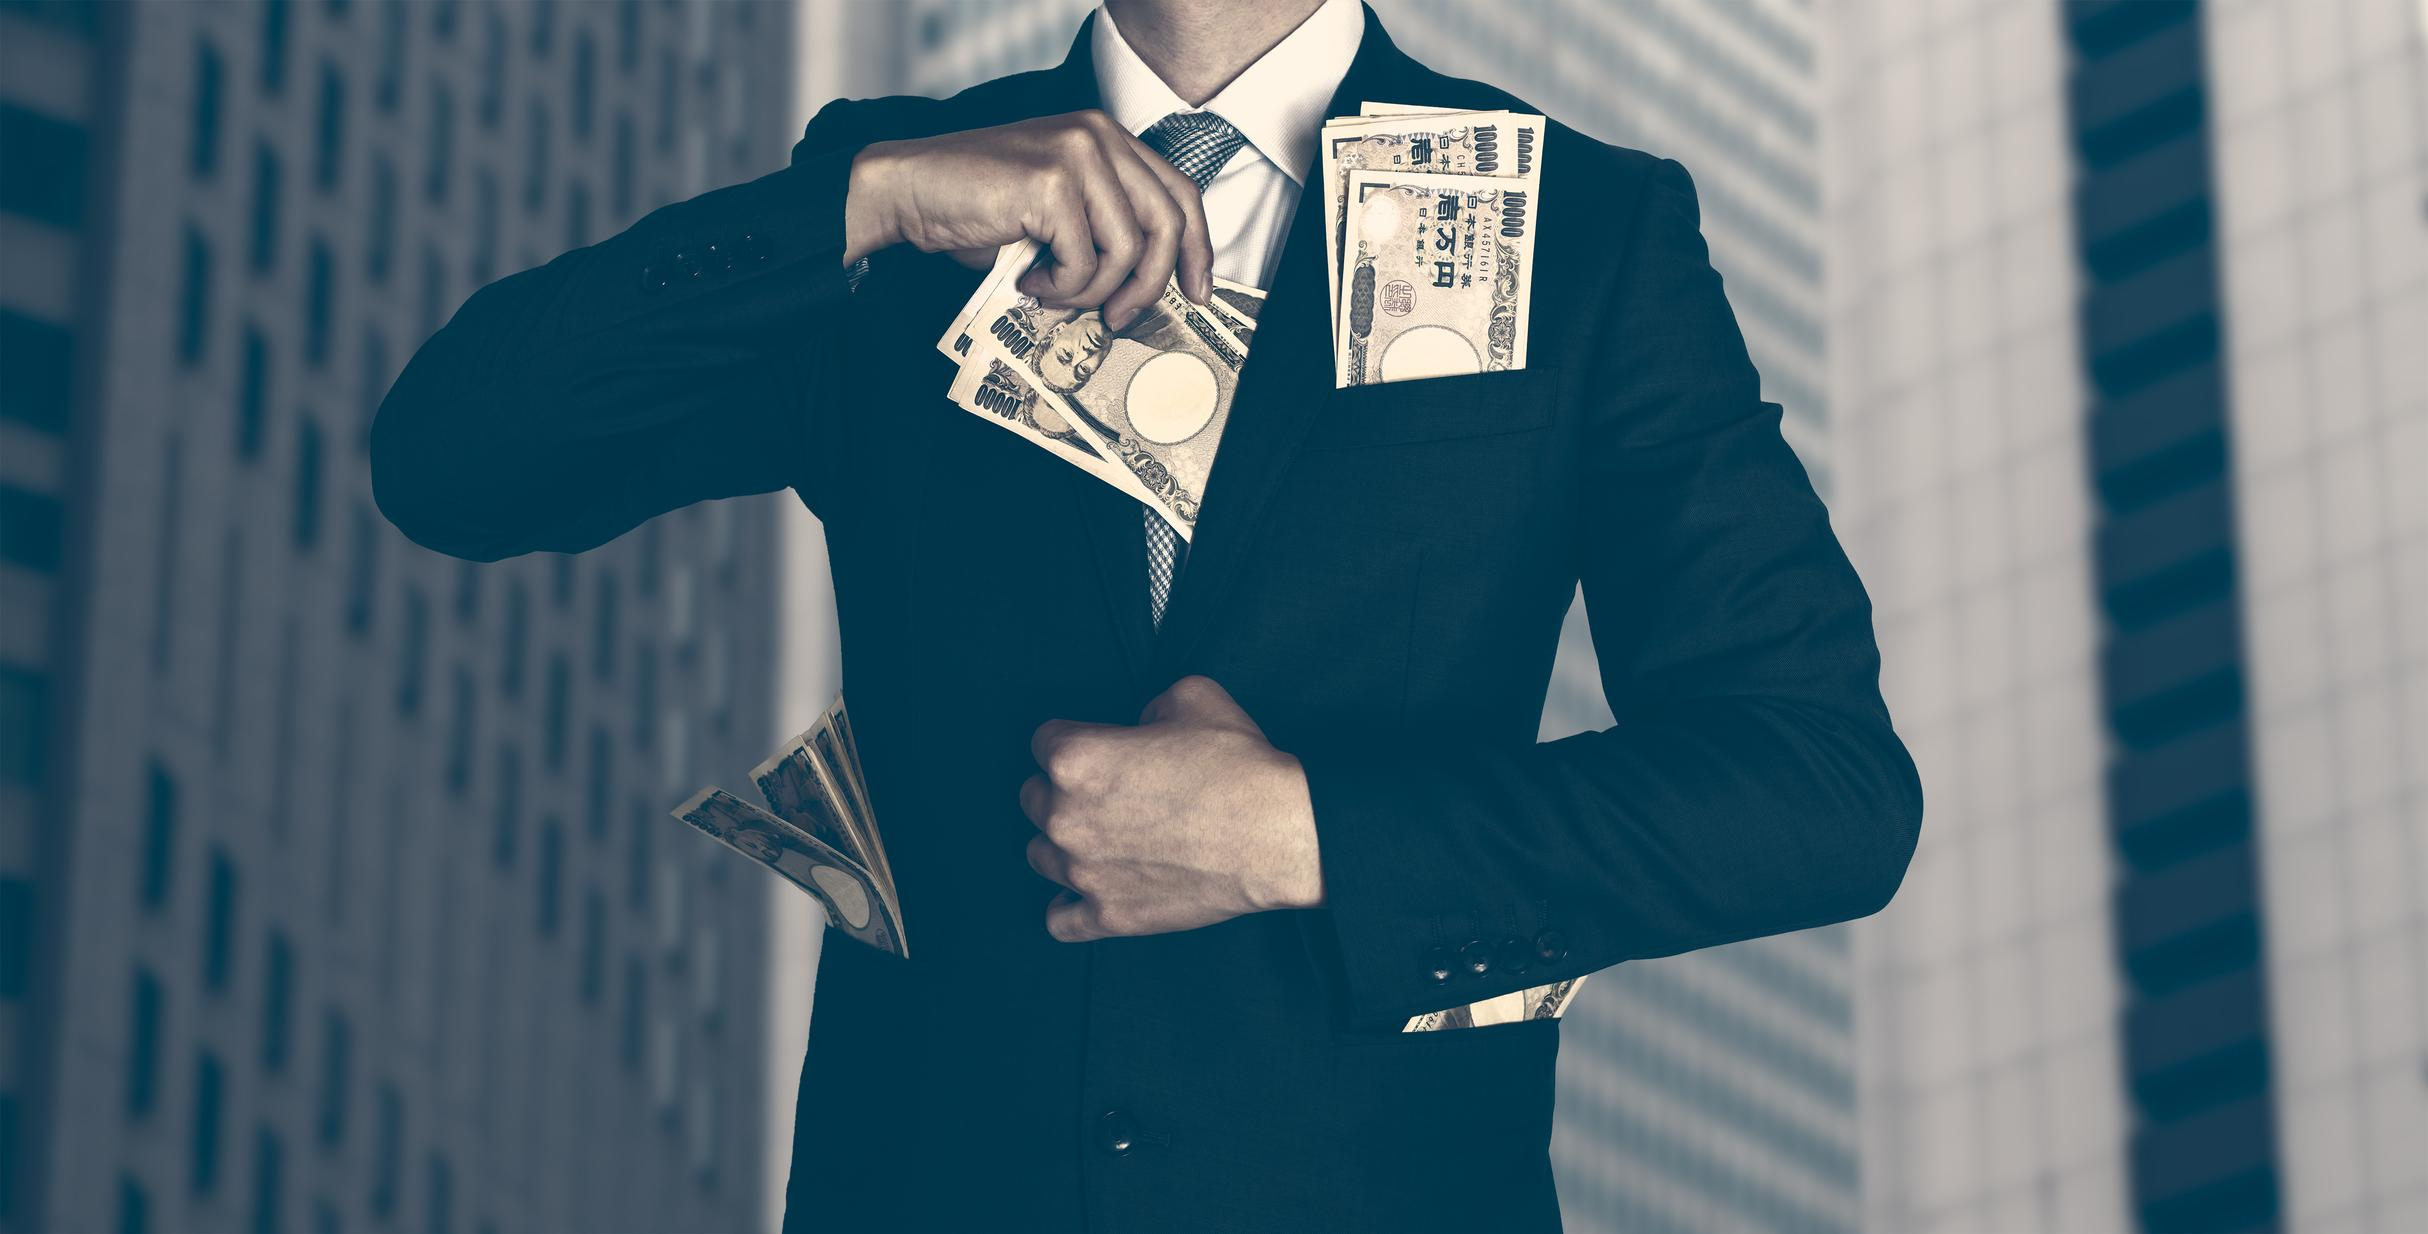 Why do ultra-wealthy people want more money?